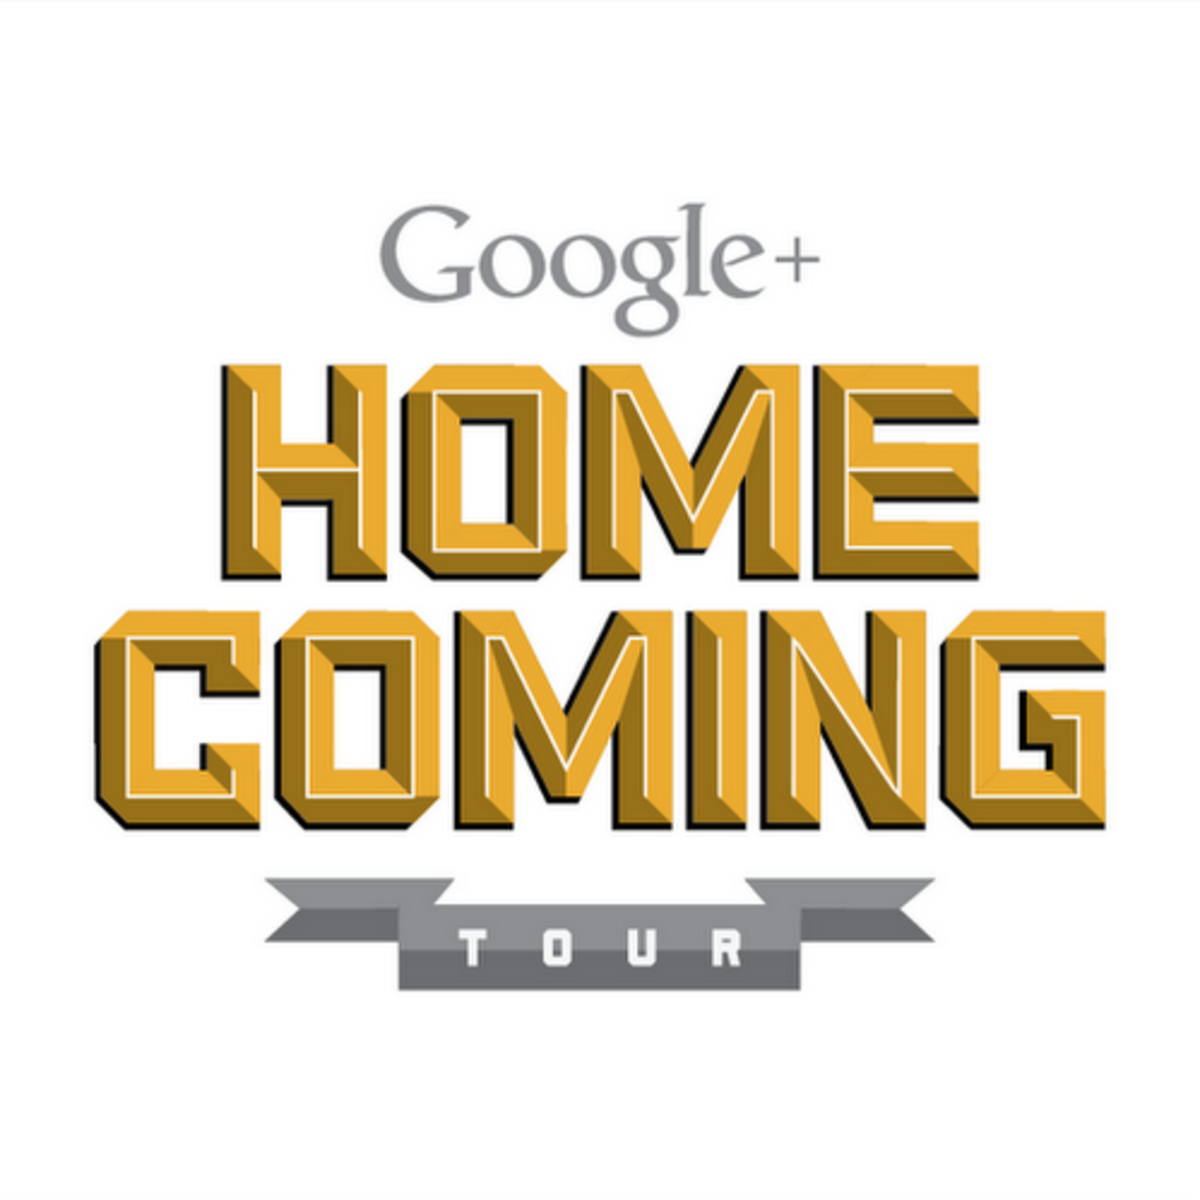 The-Google-plus-Homecoming-Tour1